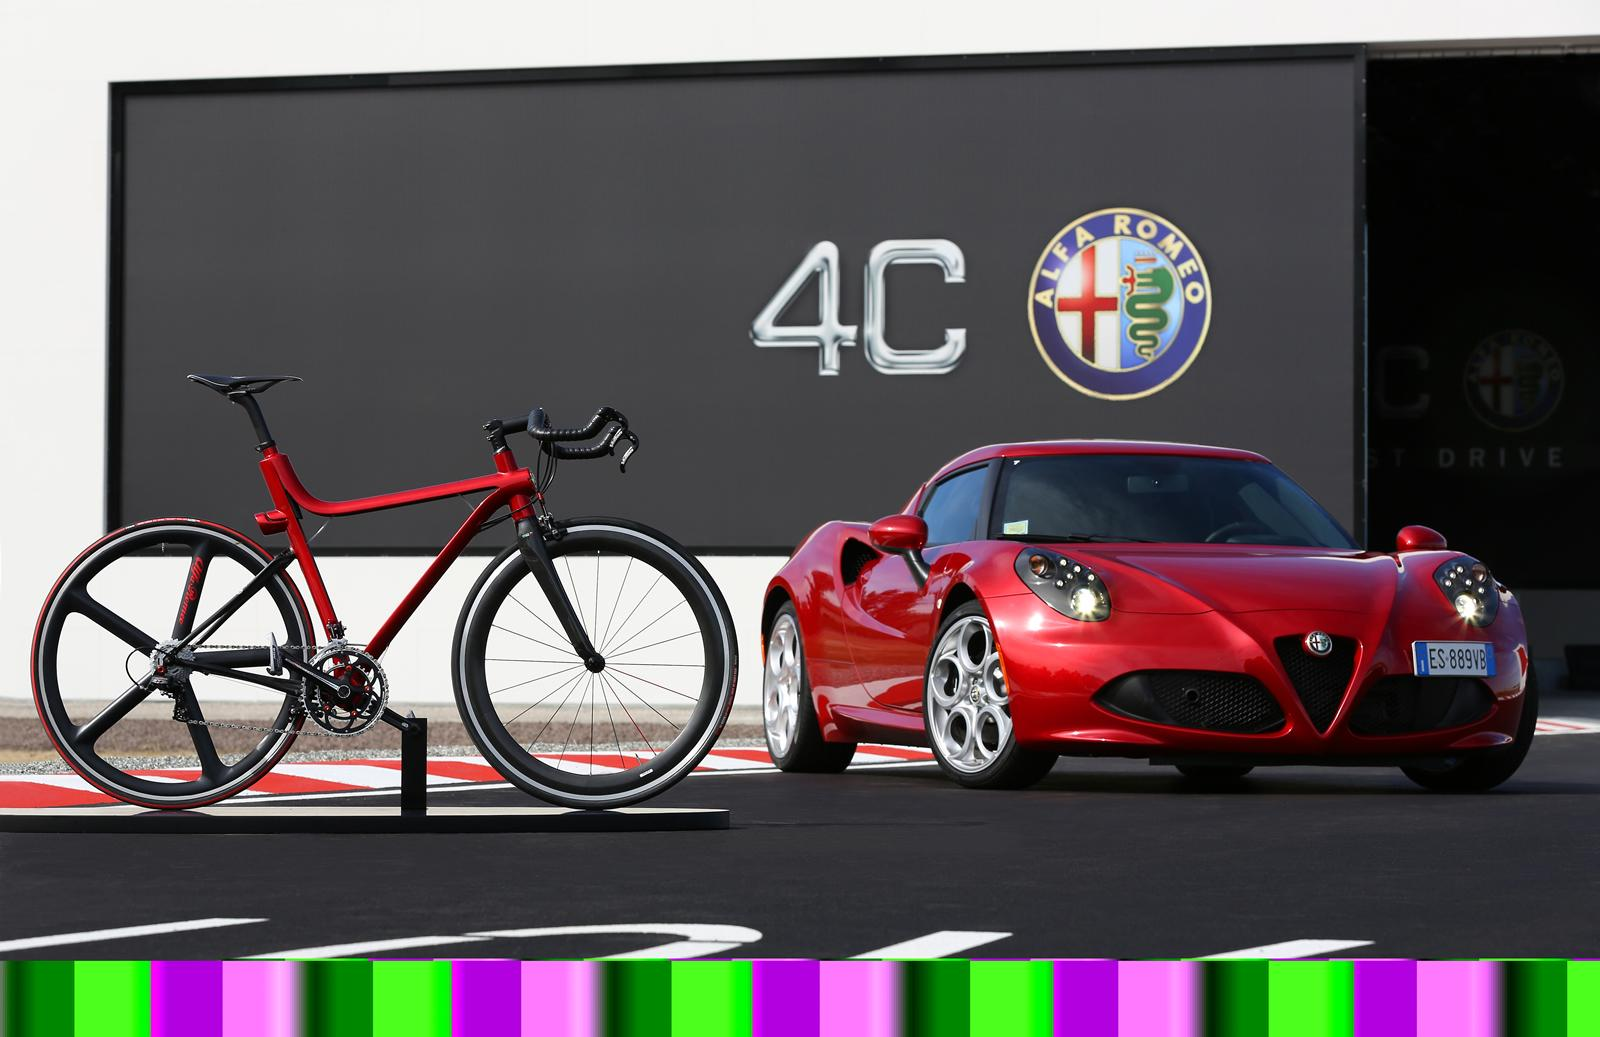 4C IFD bicycle inspired by the Alfa Romeo 4C